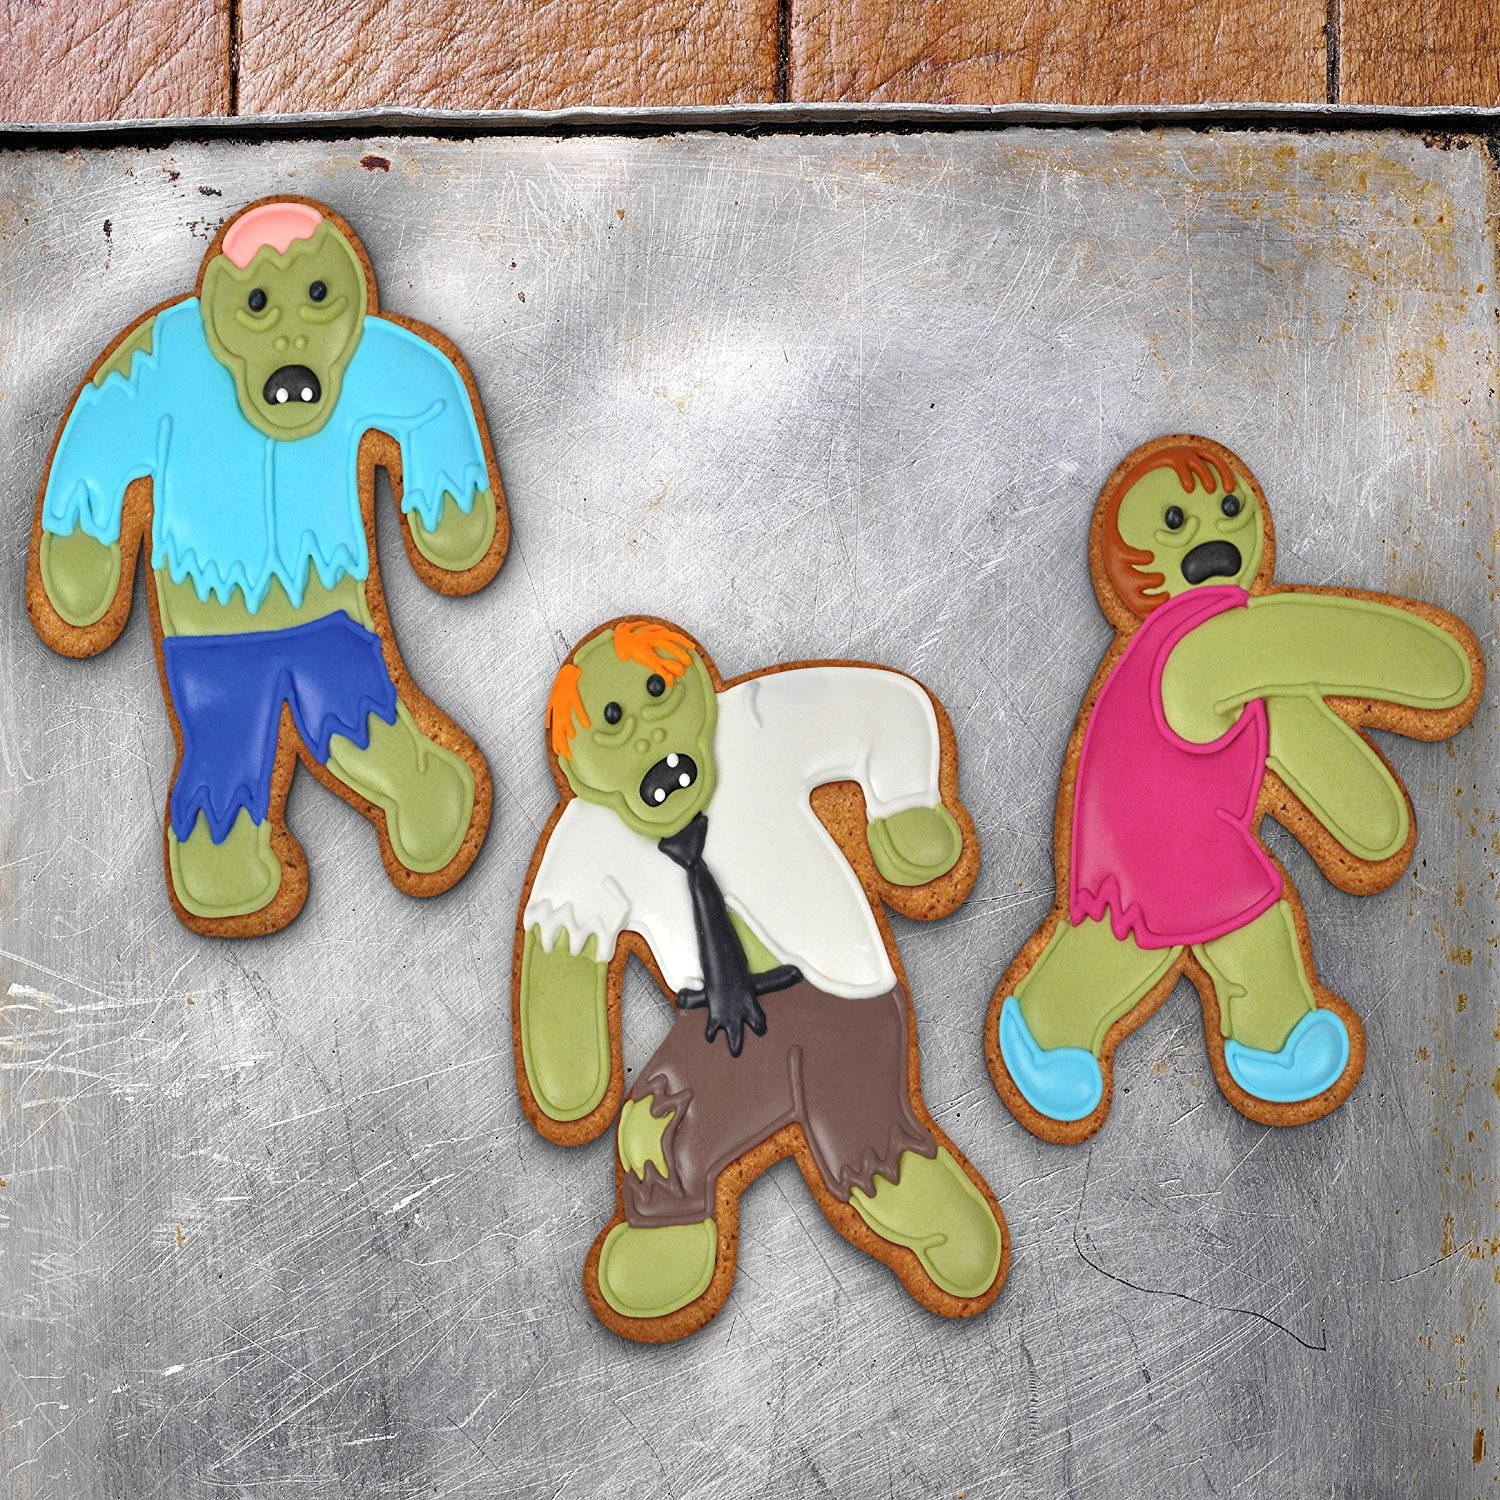 Make delicious cookies for a zombie movie night or Halloween party